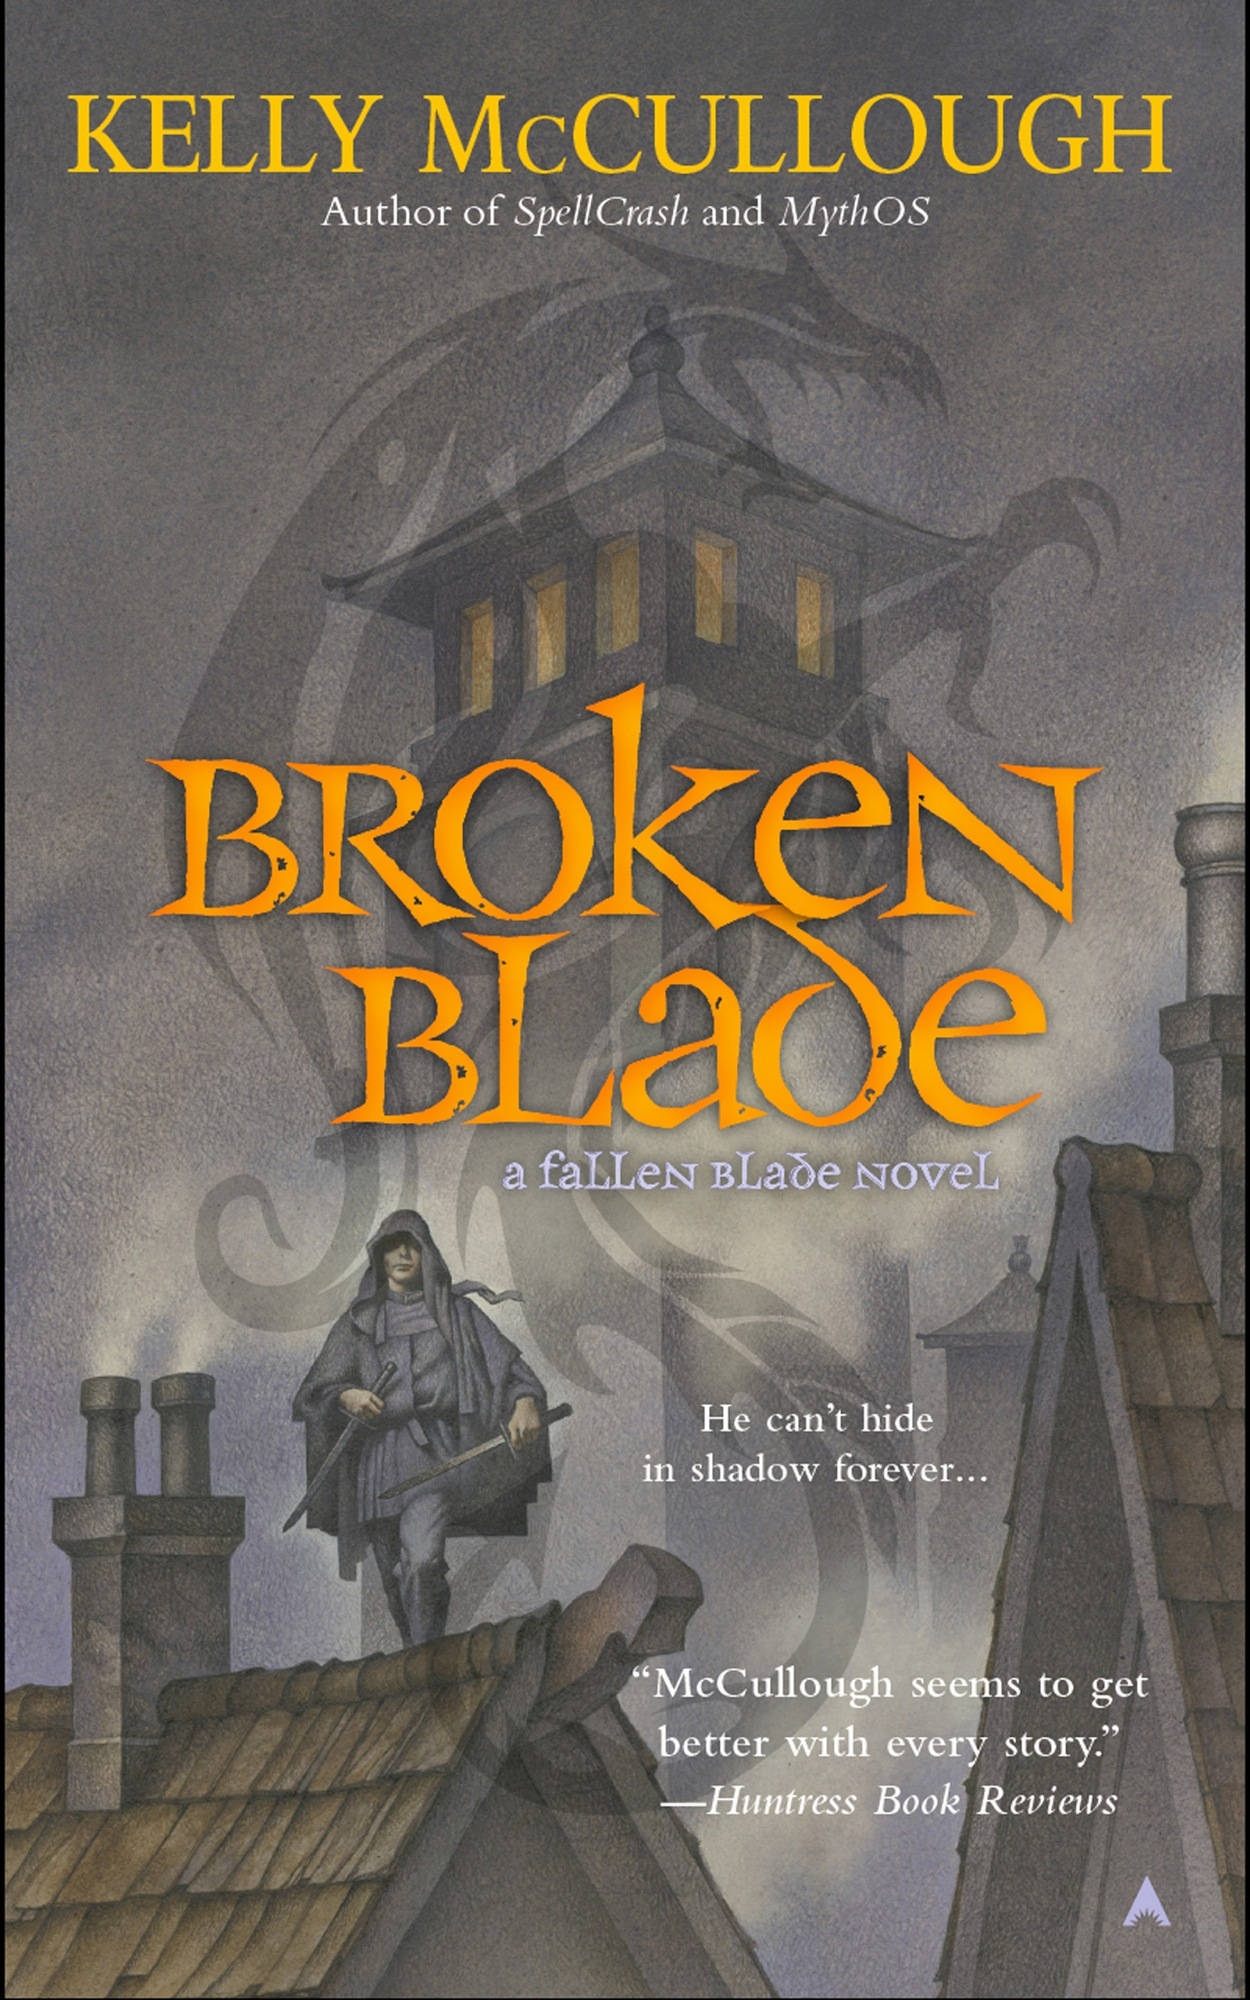 Book Cover With Pictures : Book covers fallen blade kelly mccullough